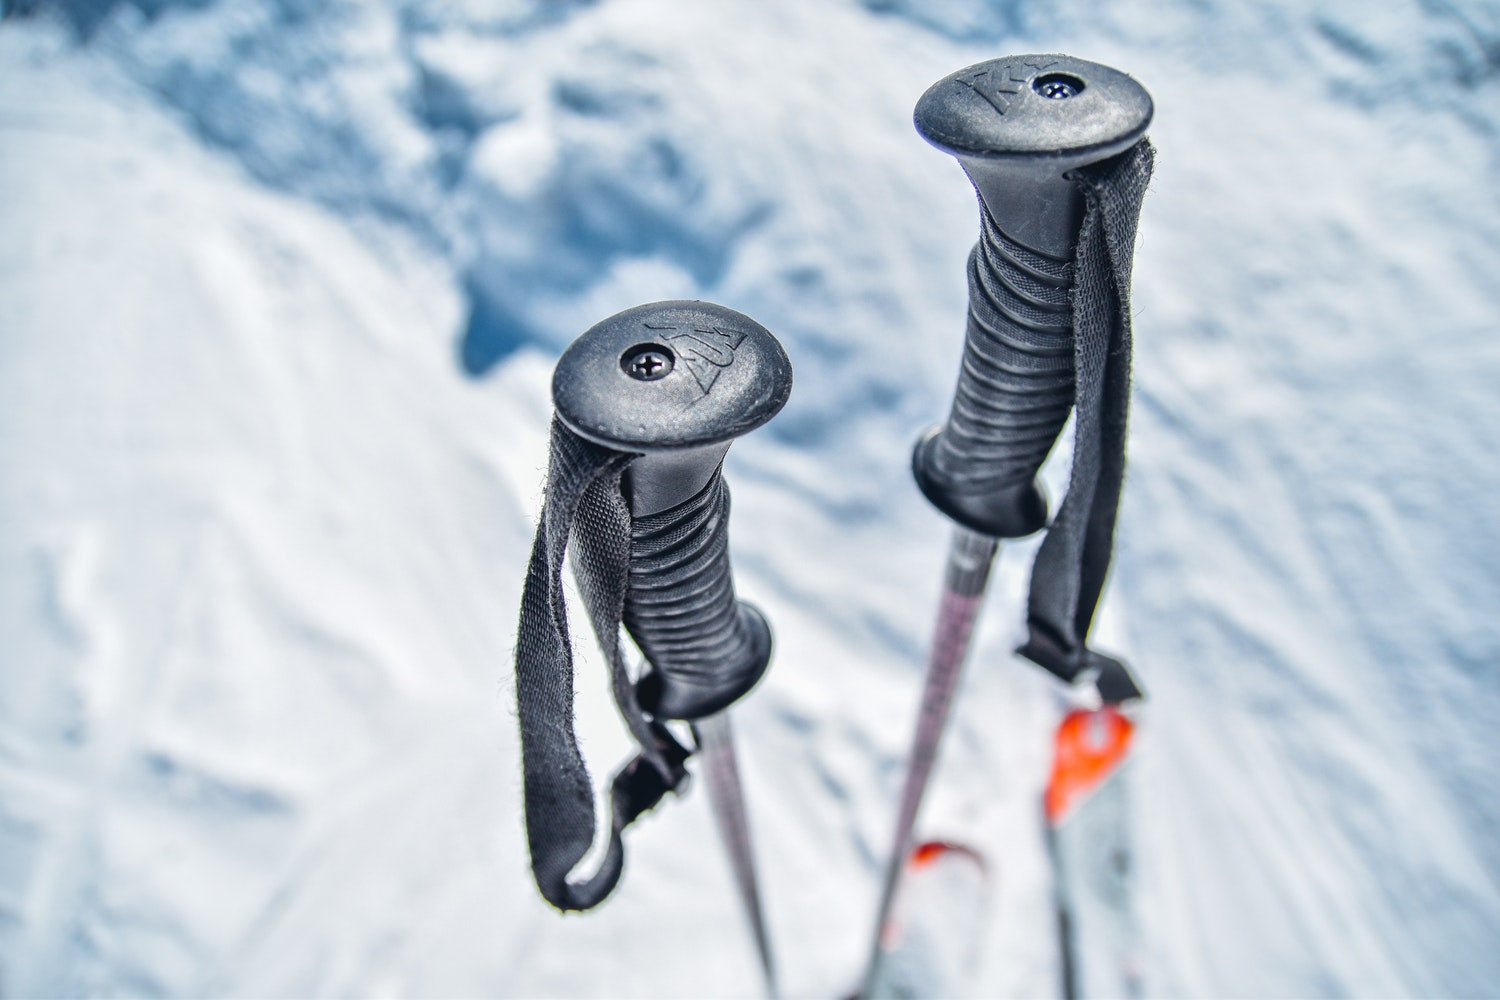 Ski poles for snowboarding gear list